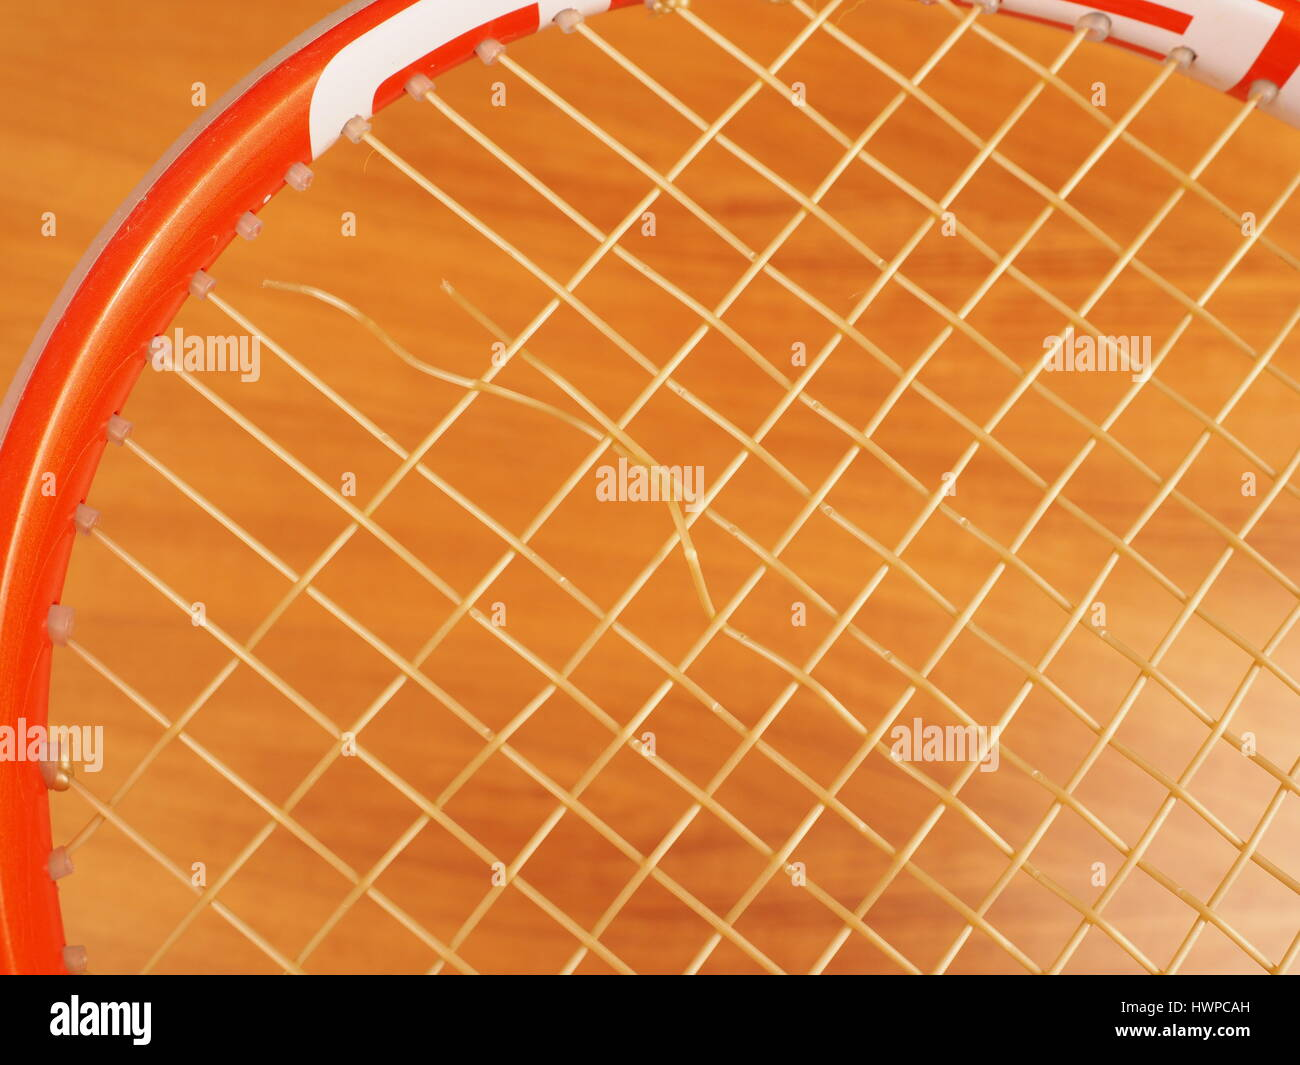 String break of a mains synthetic monofilament polyester Tennis string caused by normal wear from topspin hits near - Stock Image